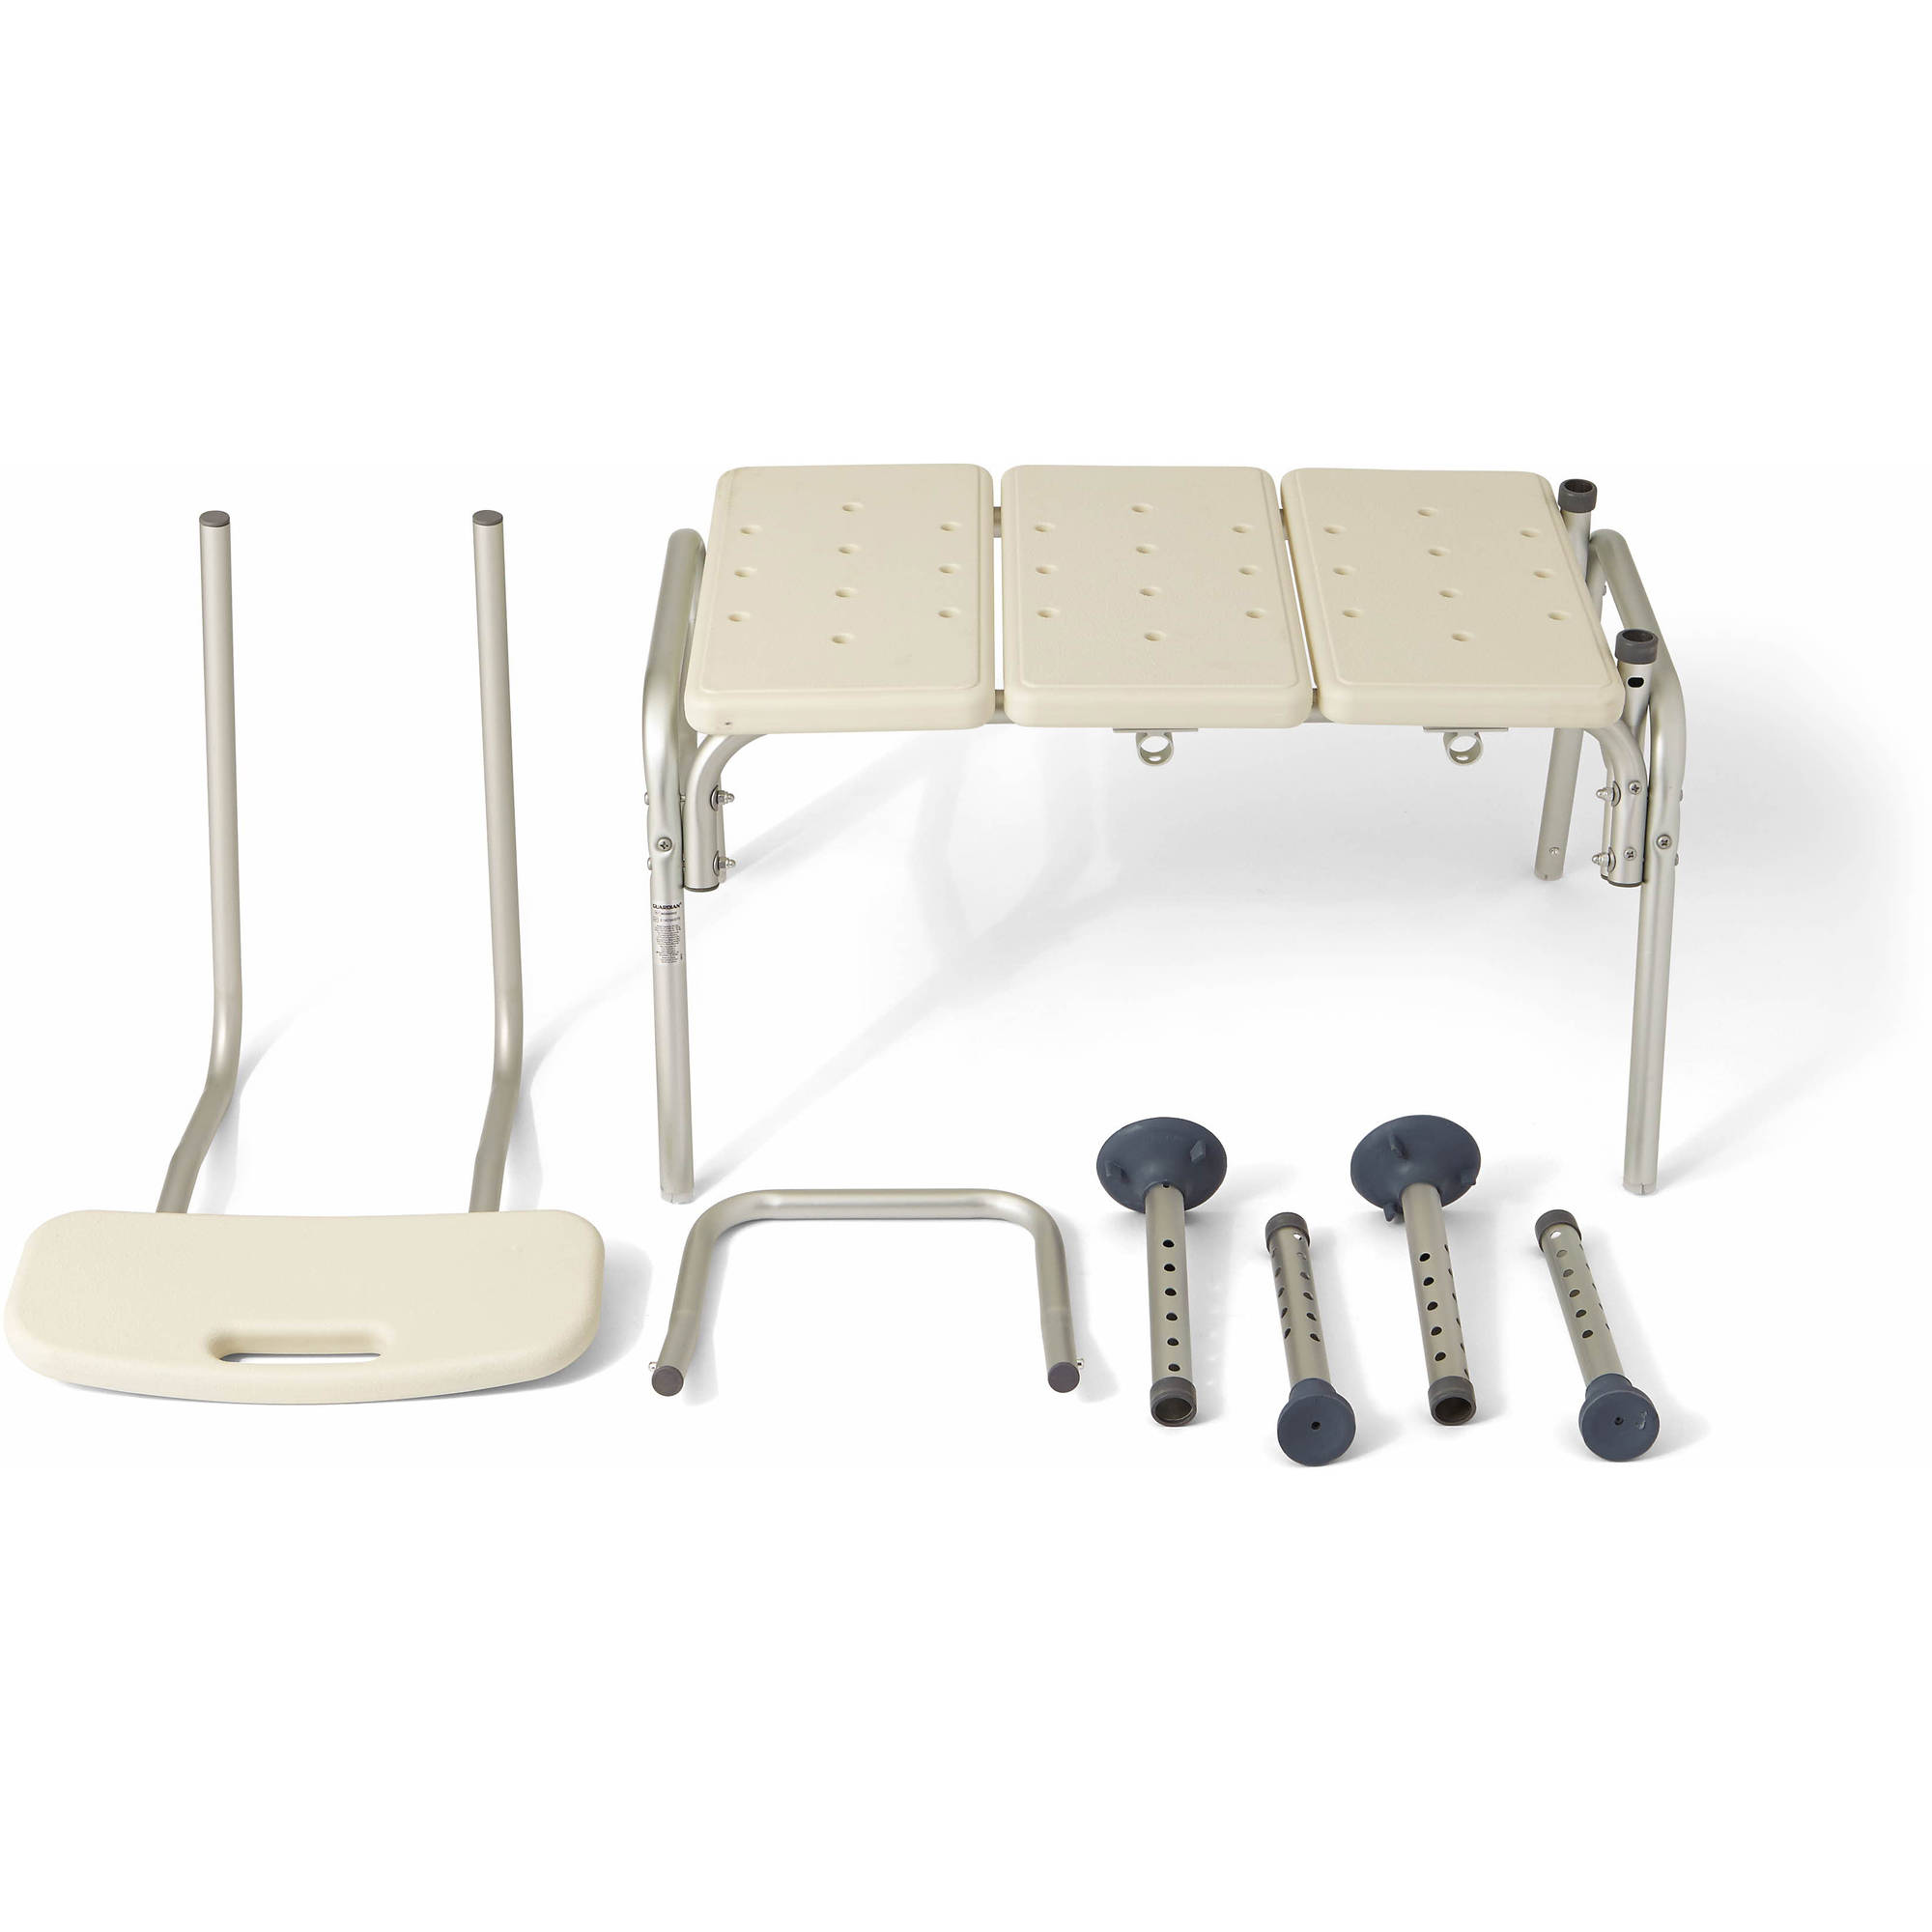 Transfer Tub Bench | Transfer Bench for Clawfoot Tub | Bathroom Transfer Bench